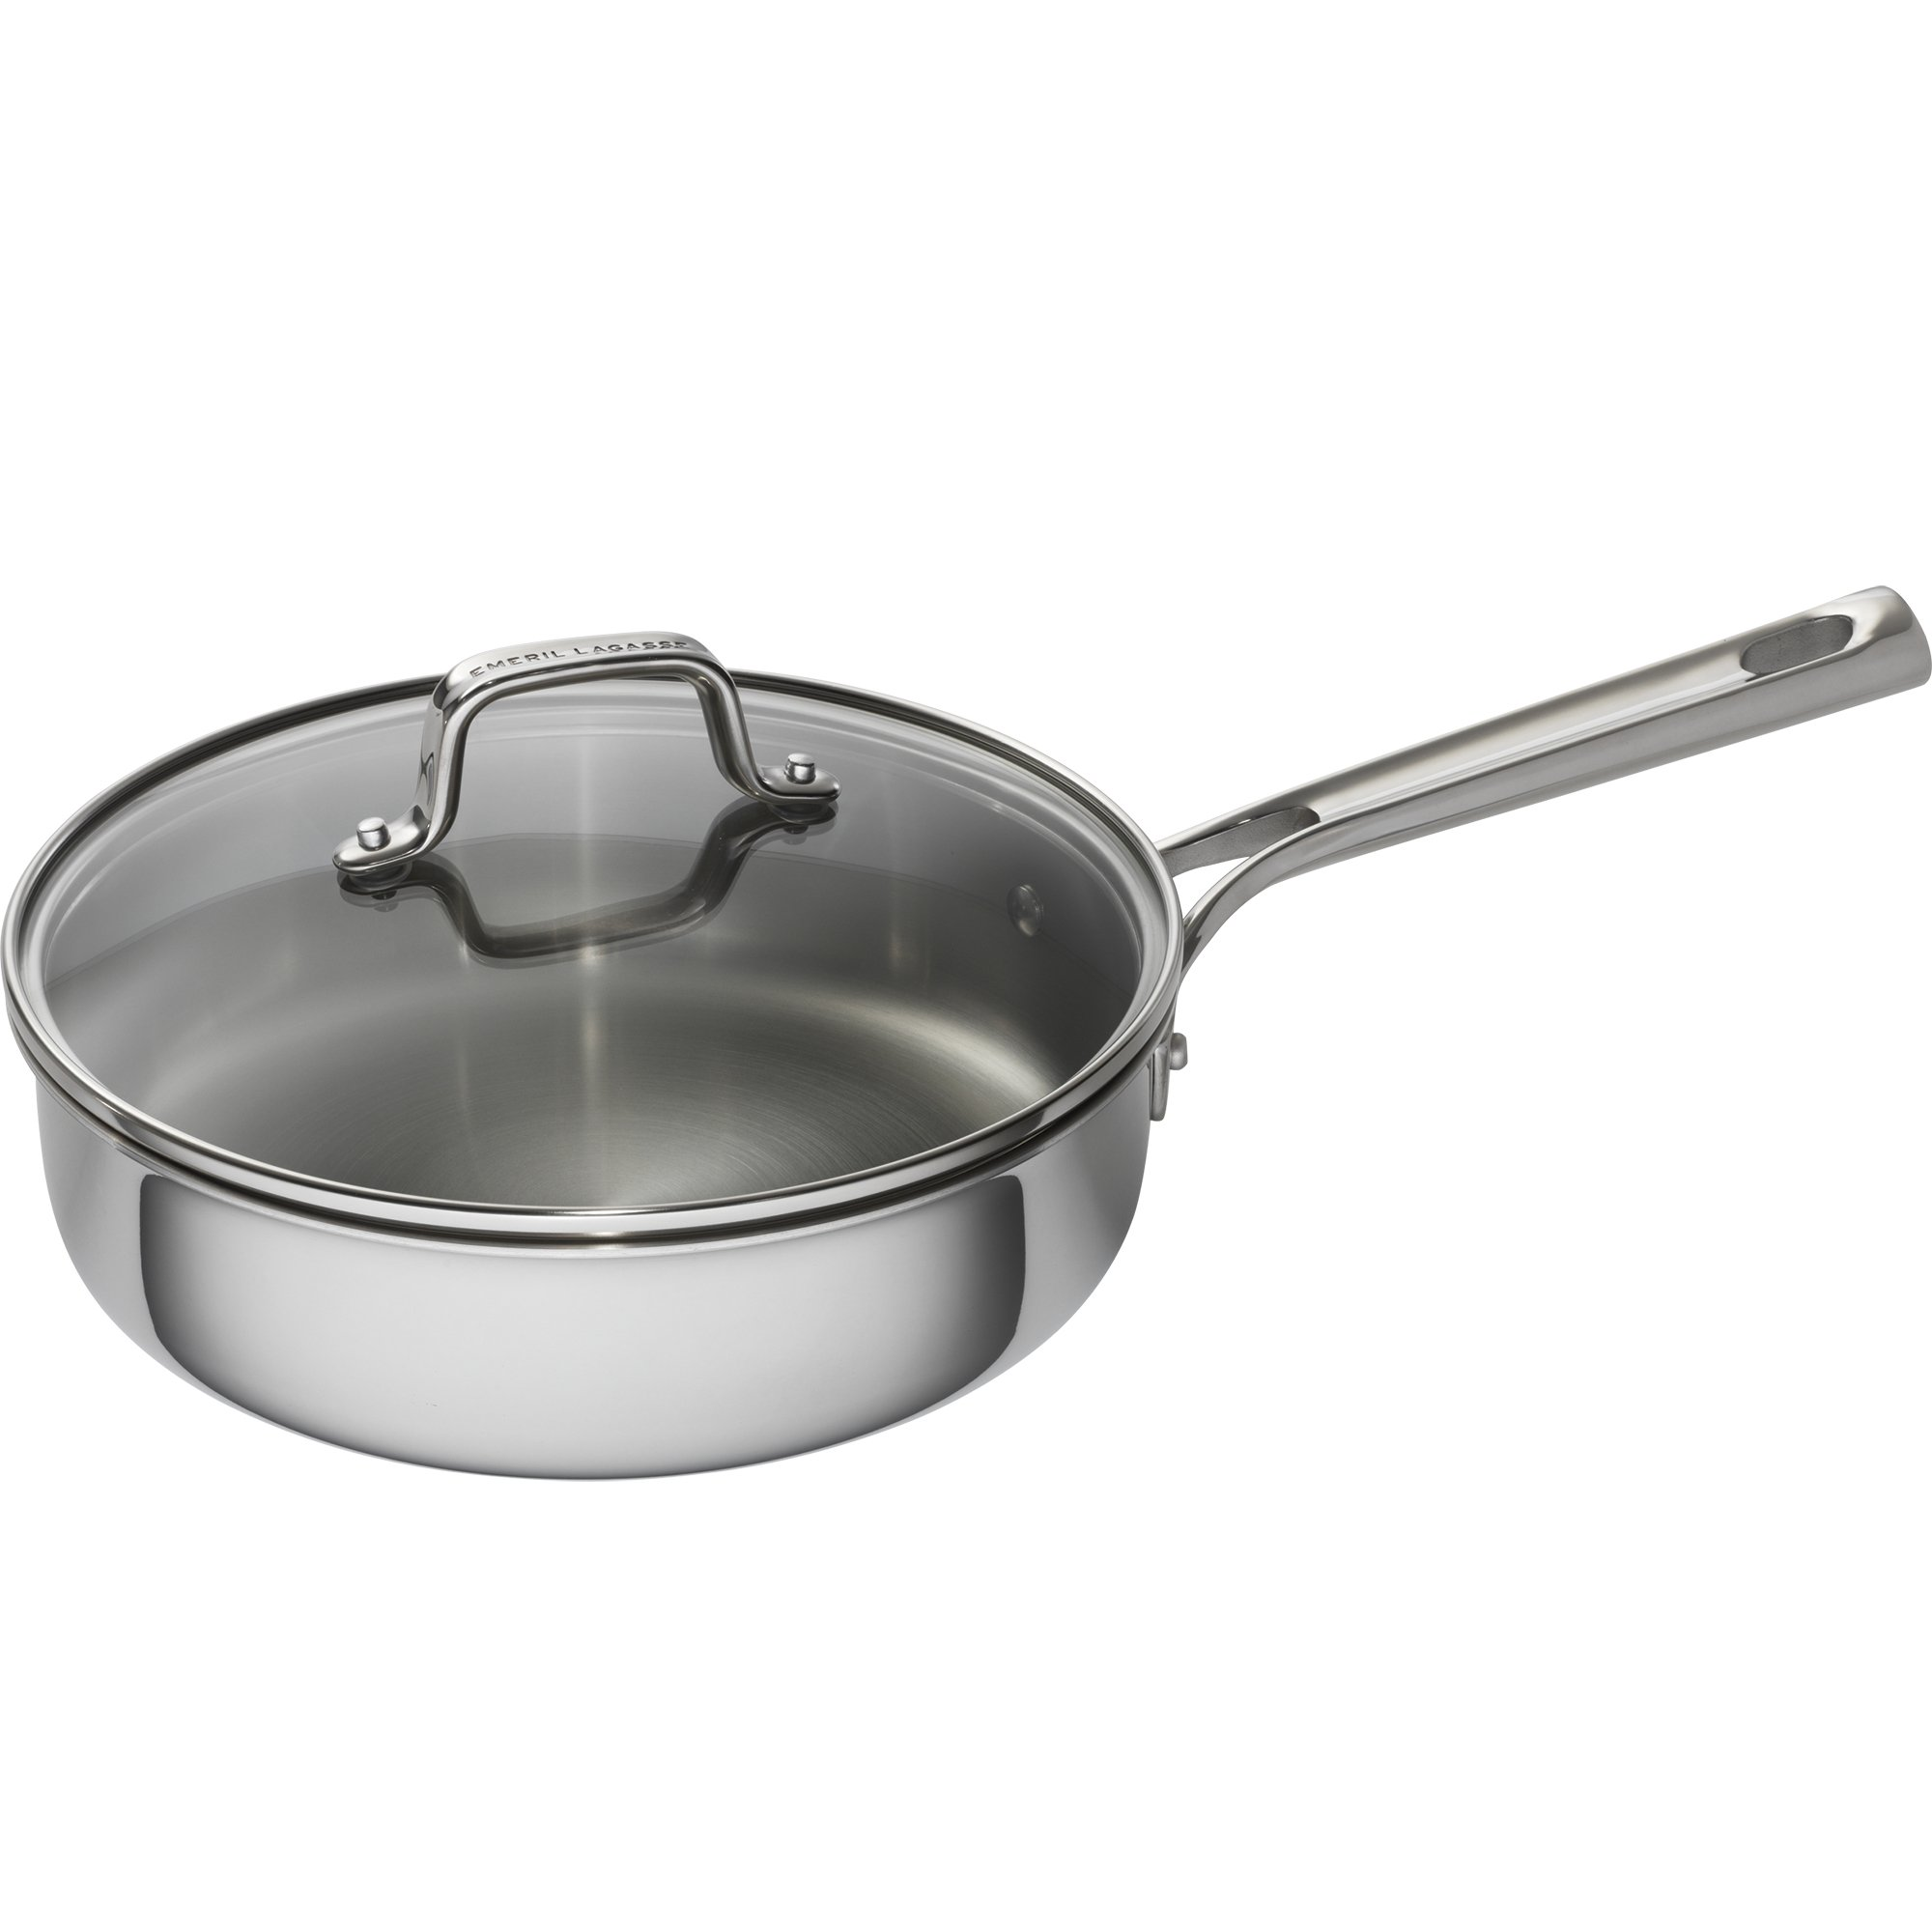 Emeril Lagasse 62857 Tri-Ply Stainless Steel Covered Deep Saute Pan, 3 quart, Silver